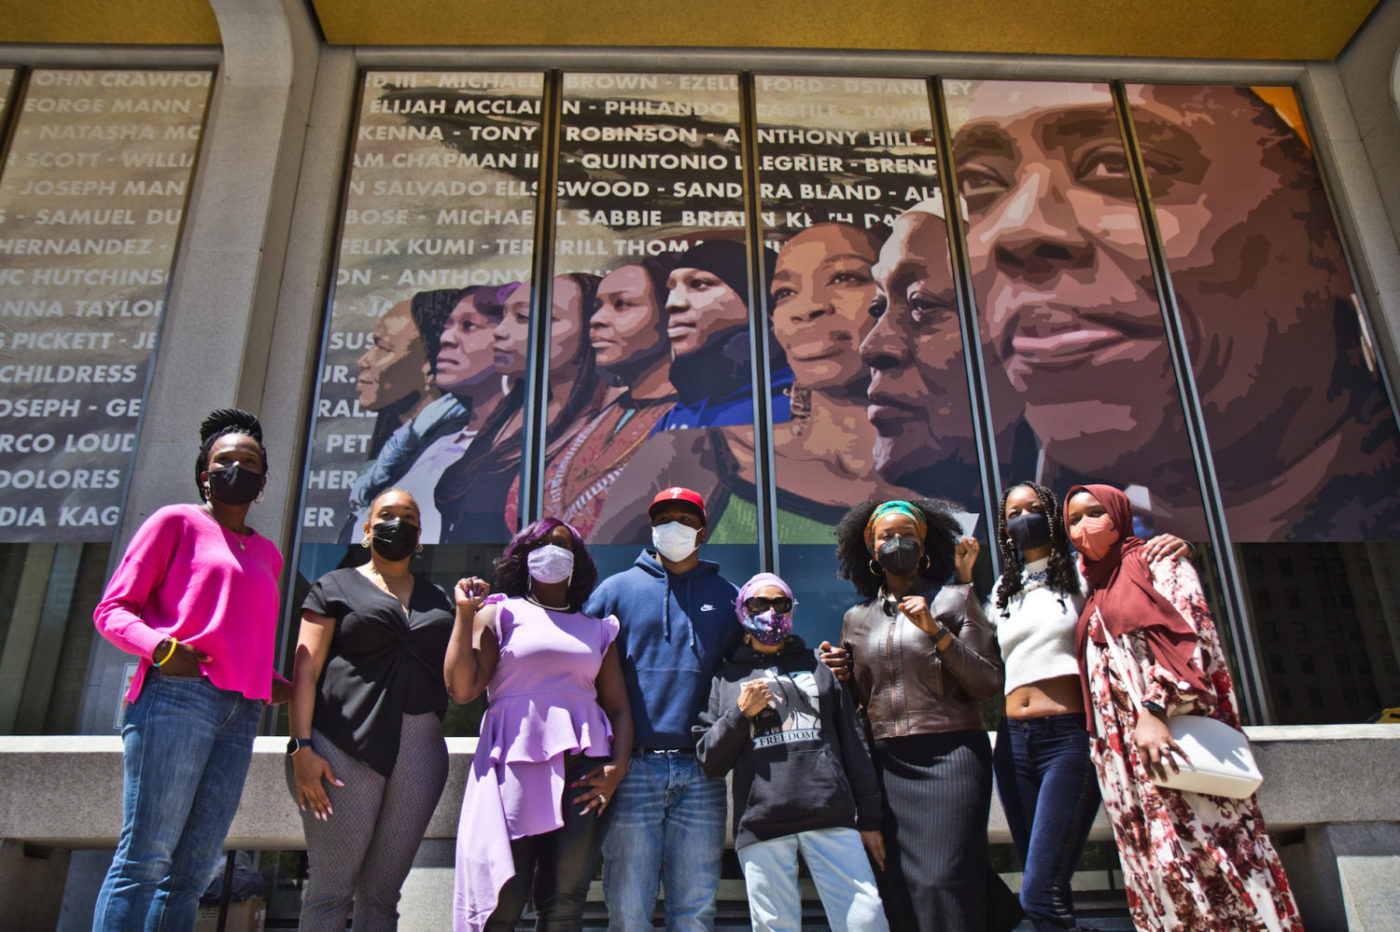 Crown-Mural-activists-stand-in-front-of-mural-unveiled-051121-that-pays-homage-to-their-work-by-Kimberly-Paynter-WHYY-1-1400x932, Mumia Abu-Jamal's spiritual advisor confronts DA Krasner and the FOP, Behind Enemy Lines